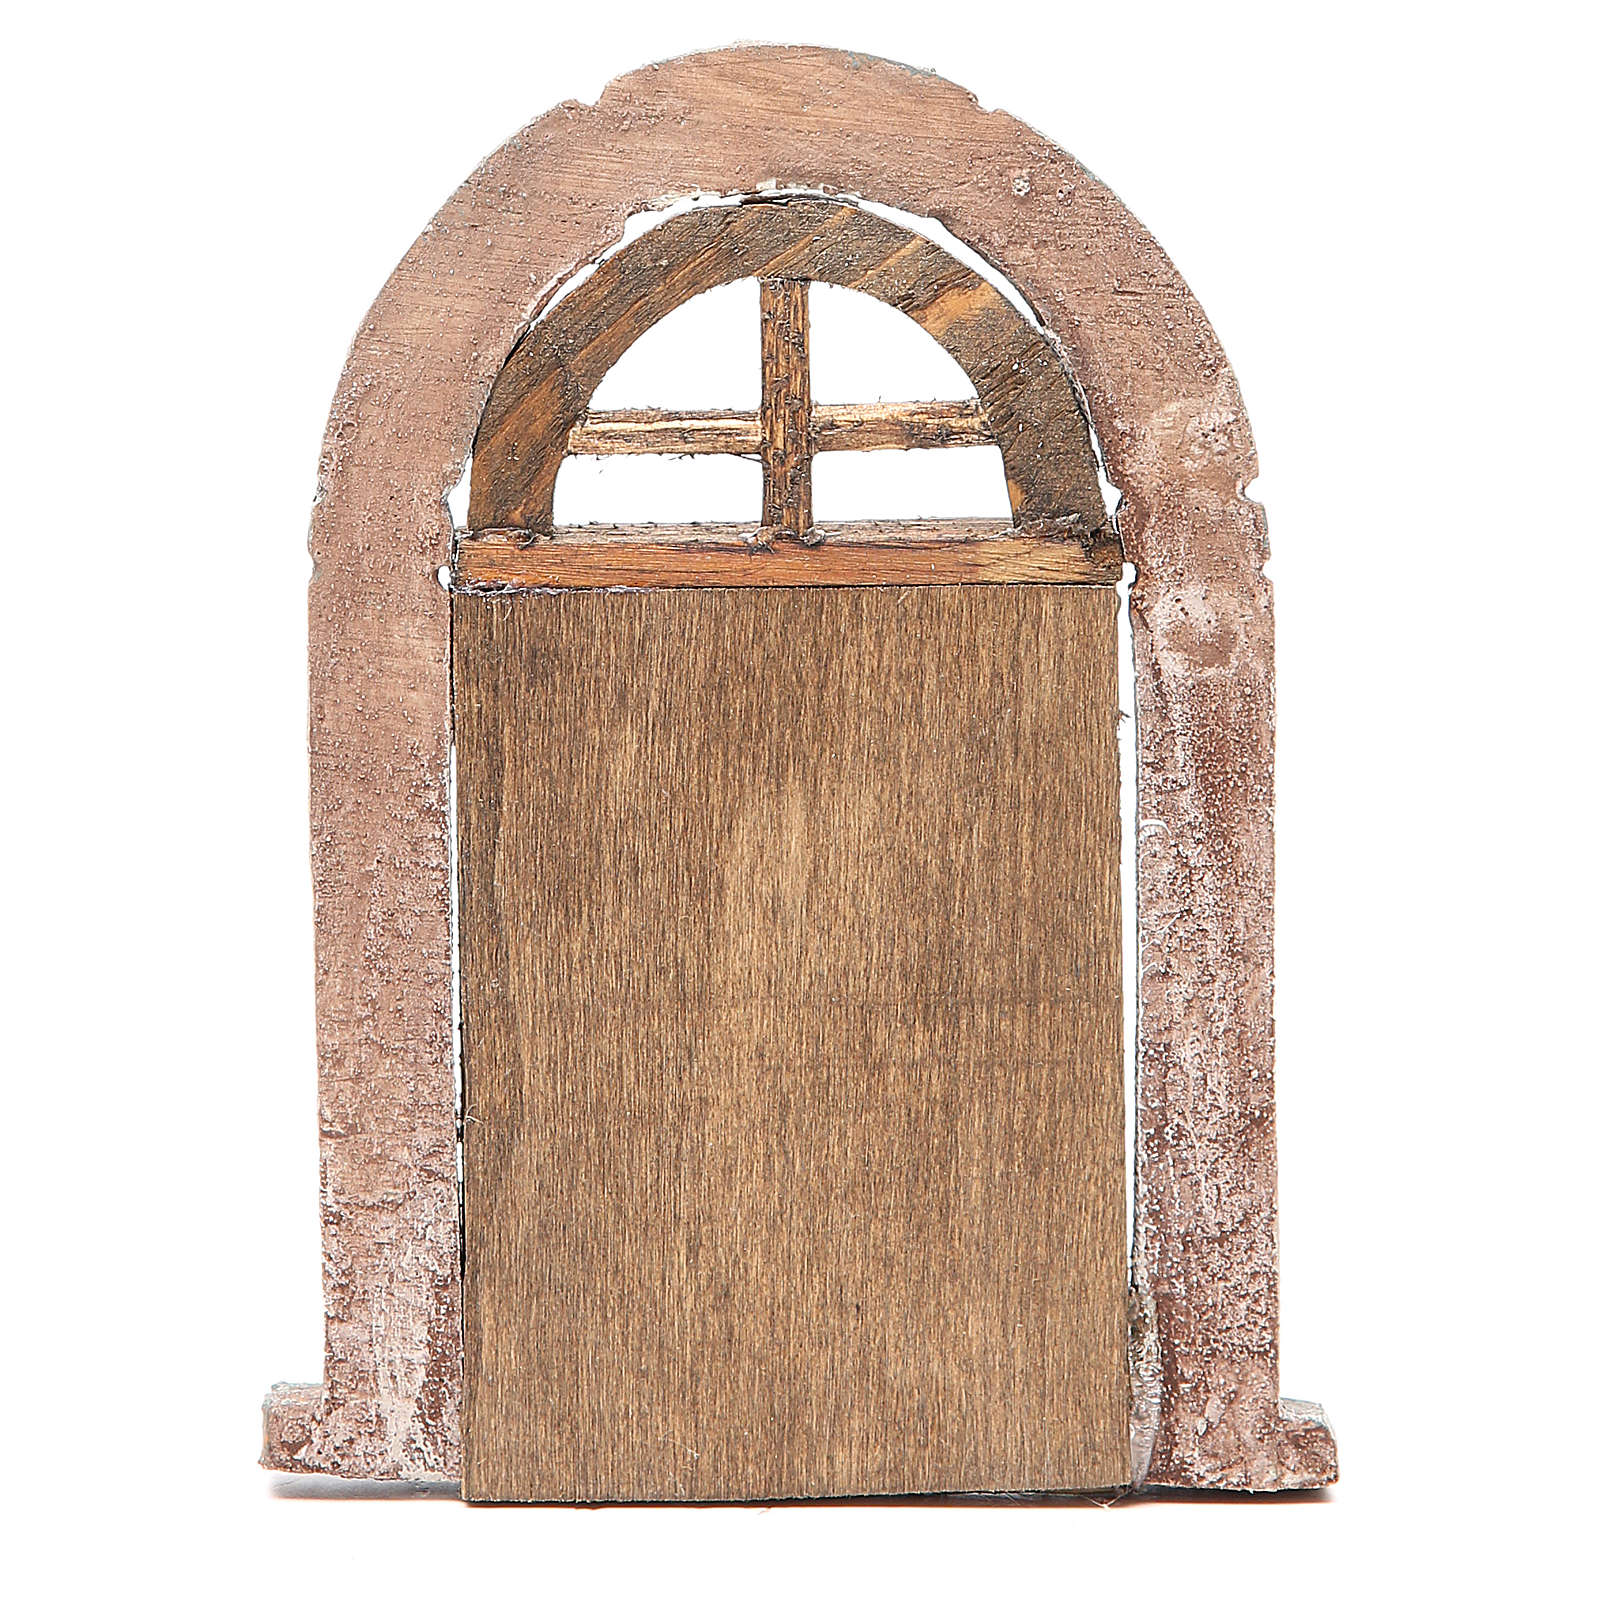 Door arched for nativity 18x12cm 4